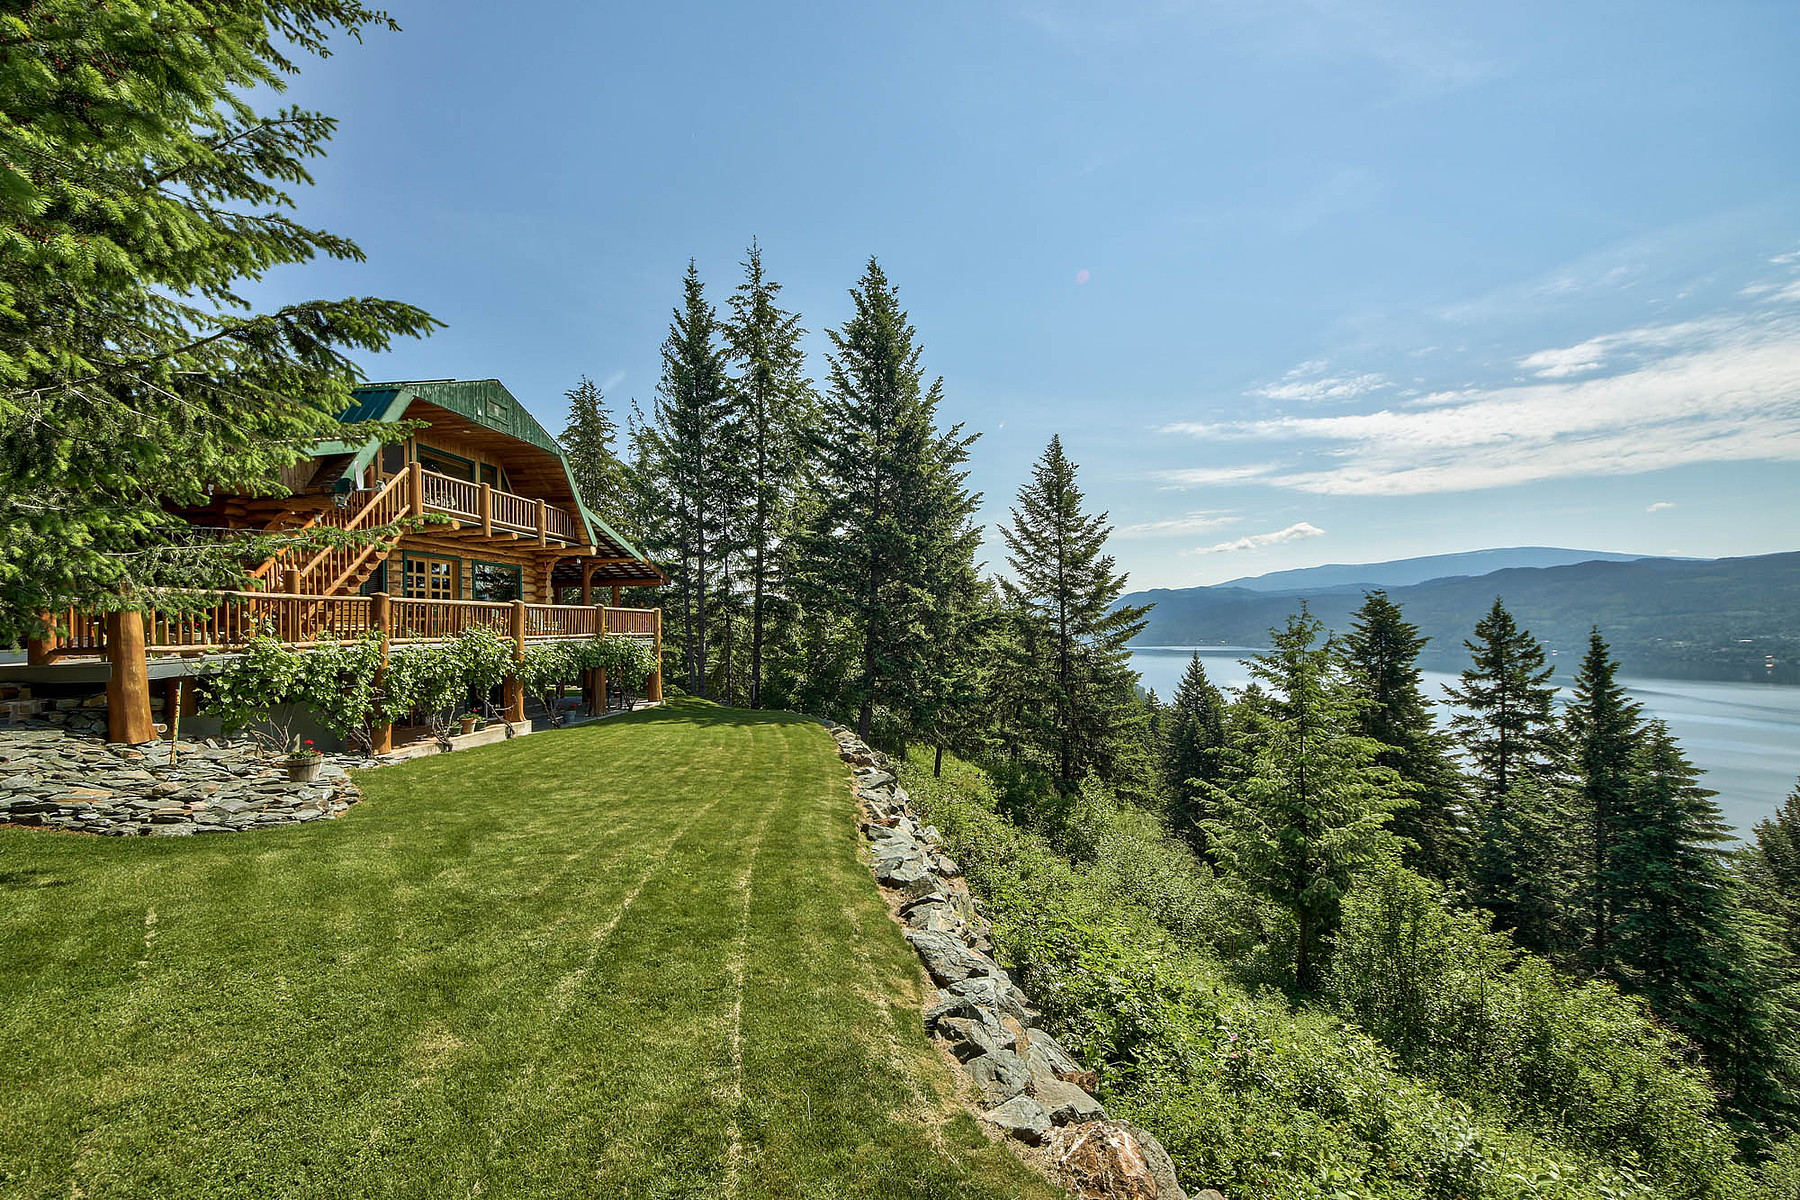 Maison unifamiliale pour l Vente à Log Home with View 4878 Leopold Rd Celista, Colombie-Britannique V0E 1M6 Canada